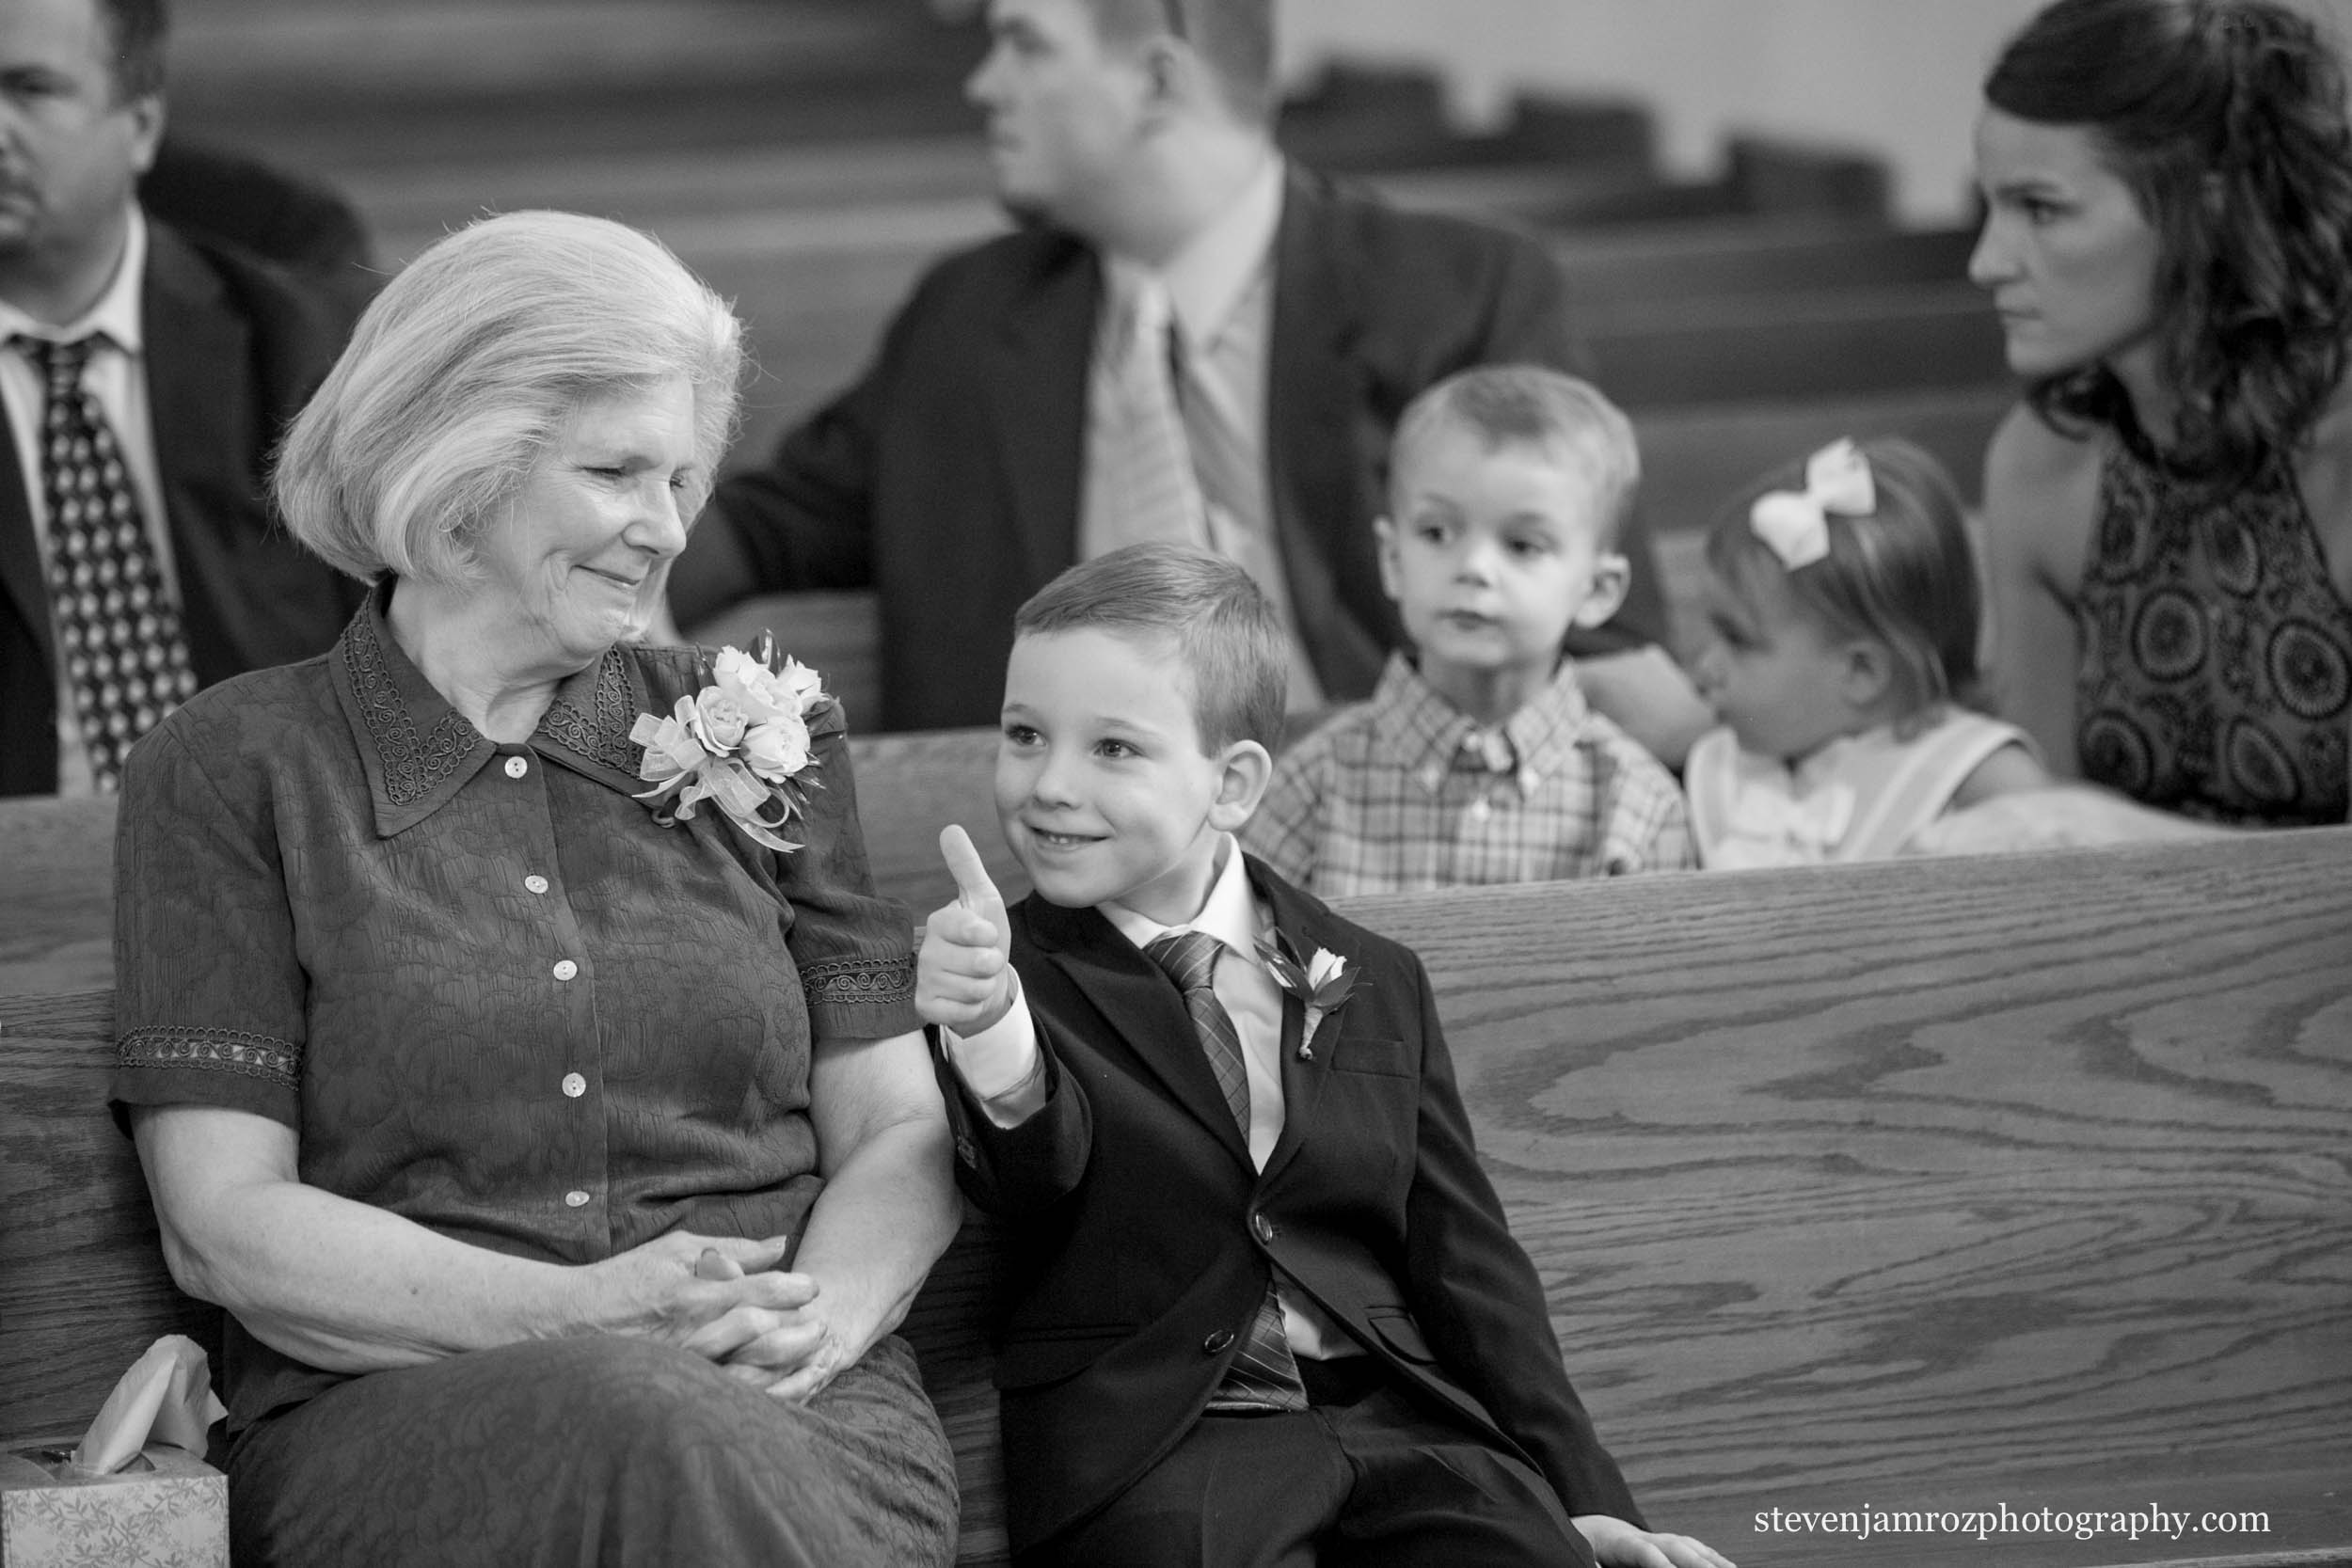 stone-chapel-wedding-ceremony-wake-forest-nc-steven-jamroz-photography-0426.jpg